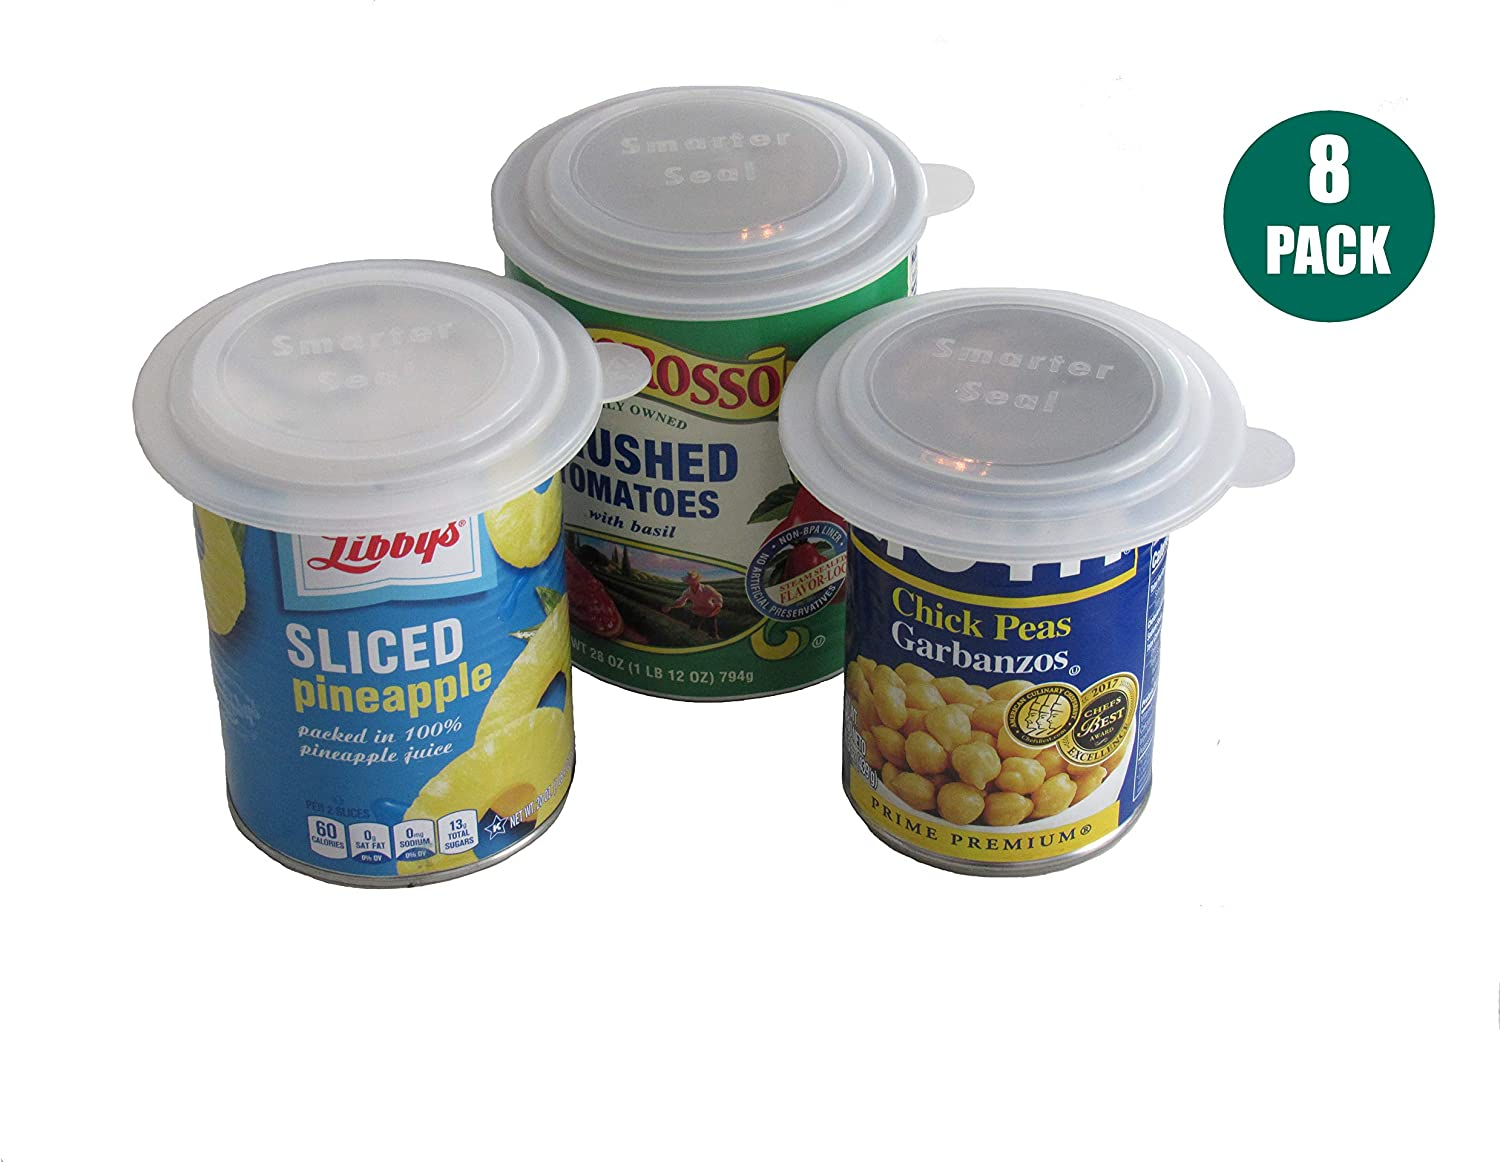 Smarter-Seal, Food Can Lids/Covers, 8-Pack, Clear Color, 4 Small Lids & 4 Large Lids - Fits Most Sizes